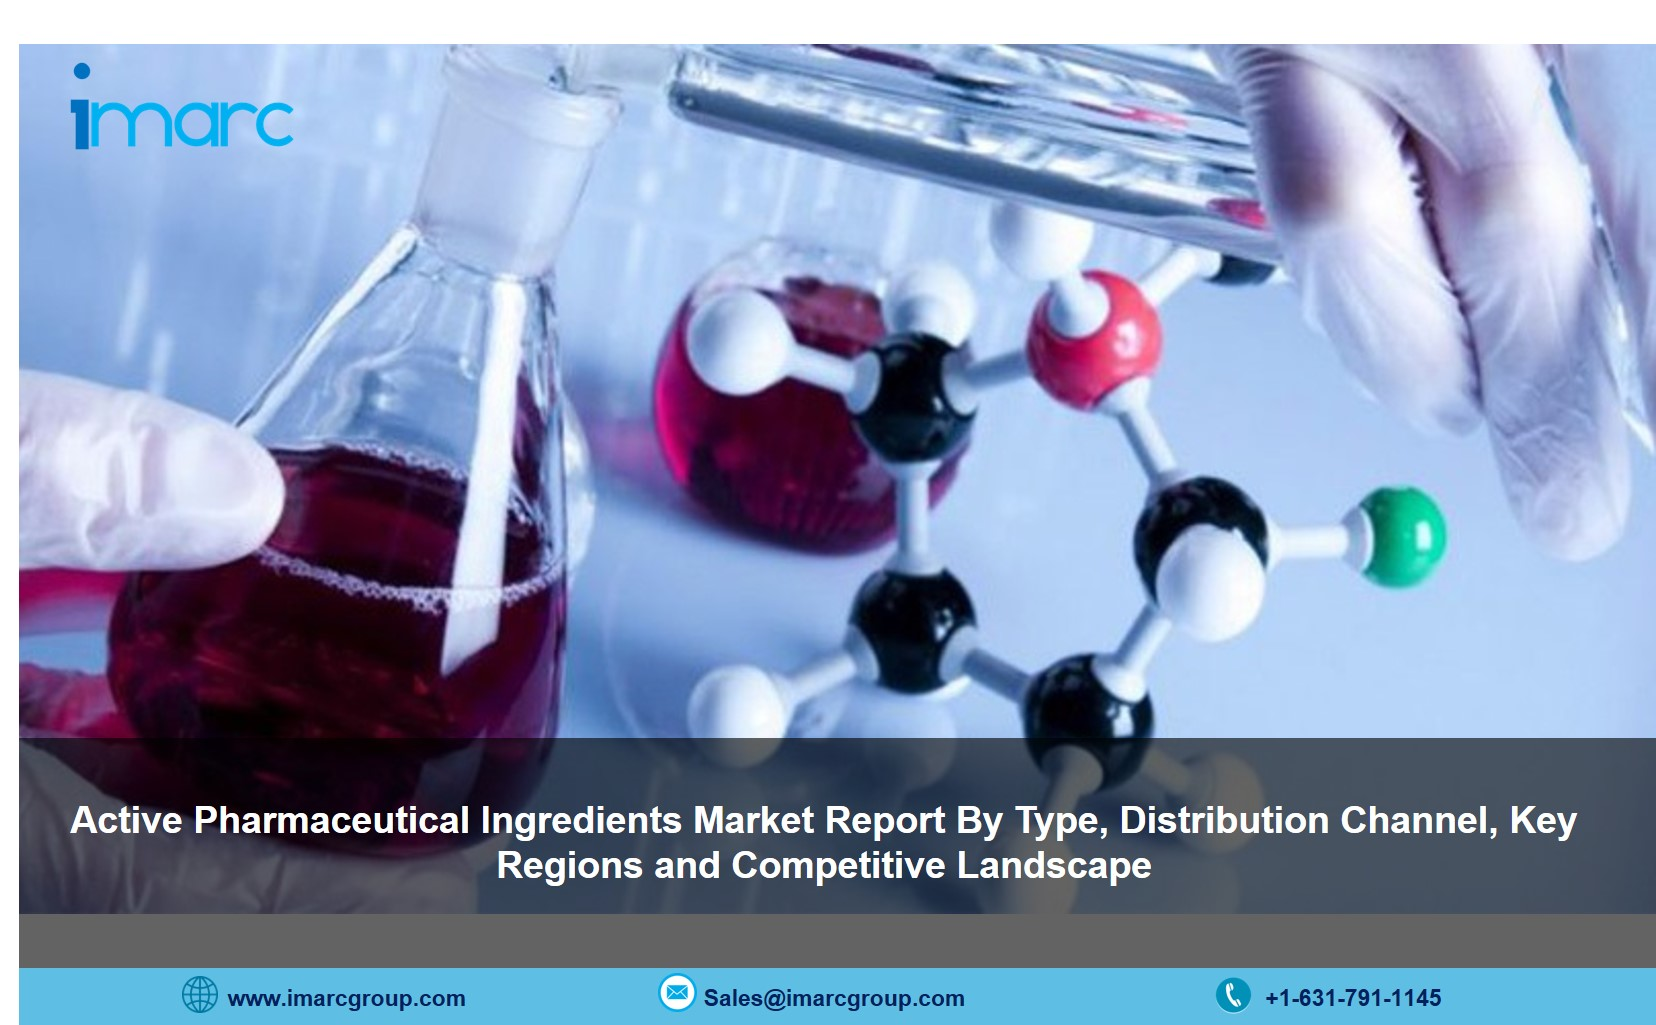 Active Pharmaceutical Ingredients Market 2021-26: Size. Share, Price and Industry Trends